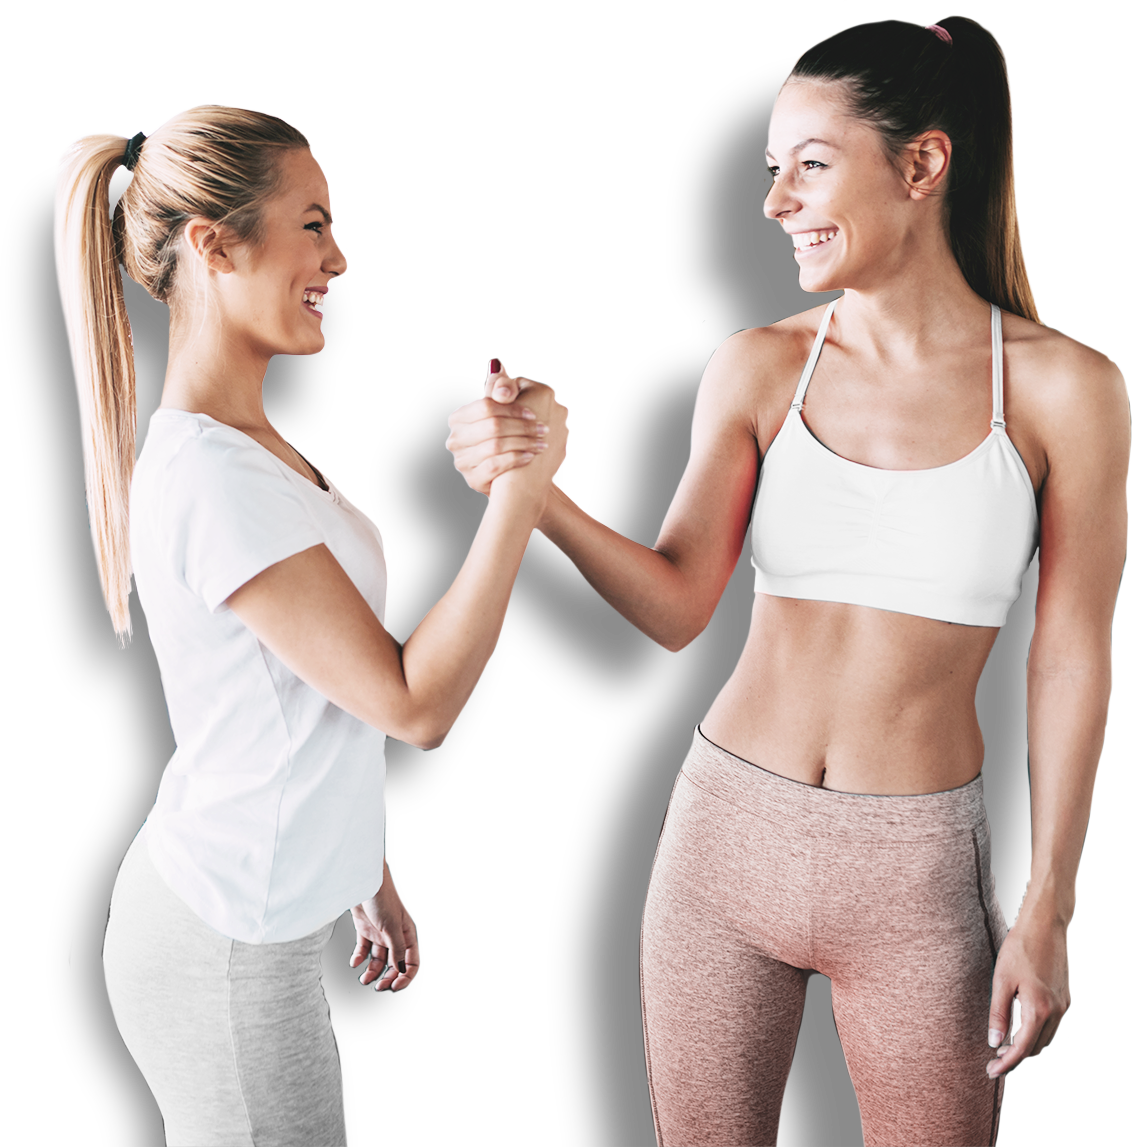 Two Girl Friends Shaking Hands